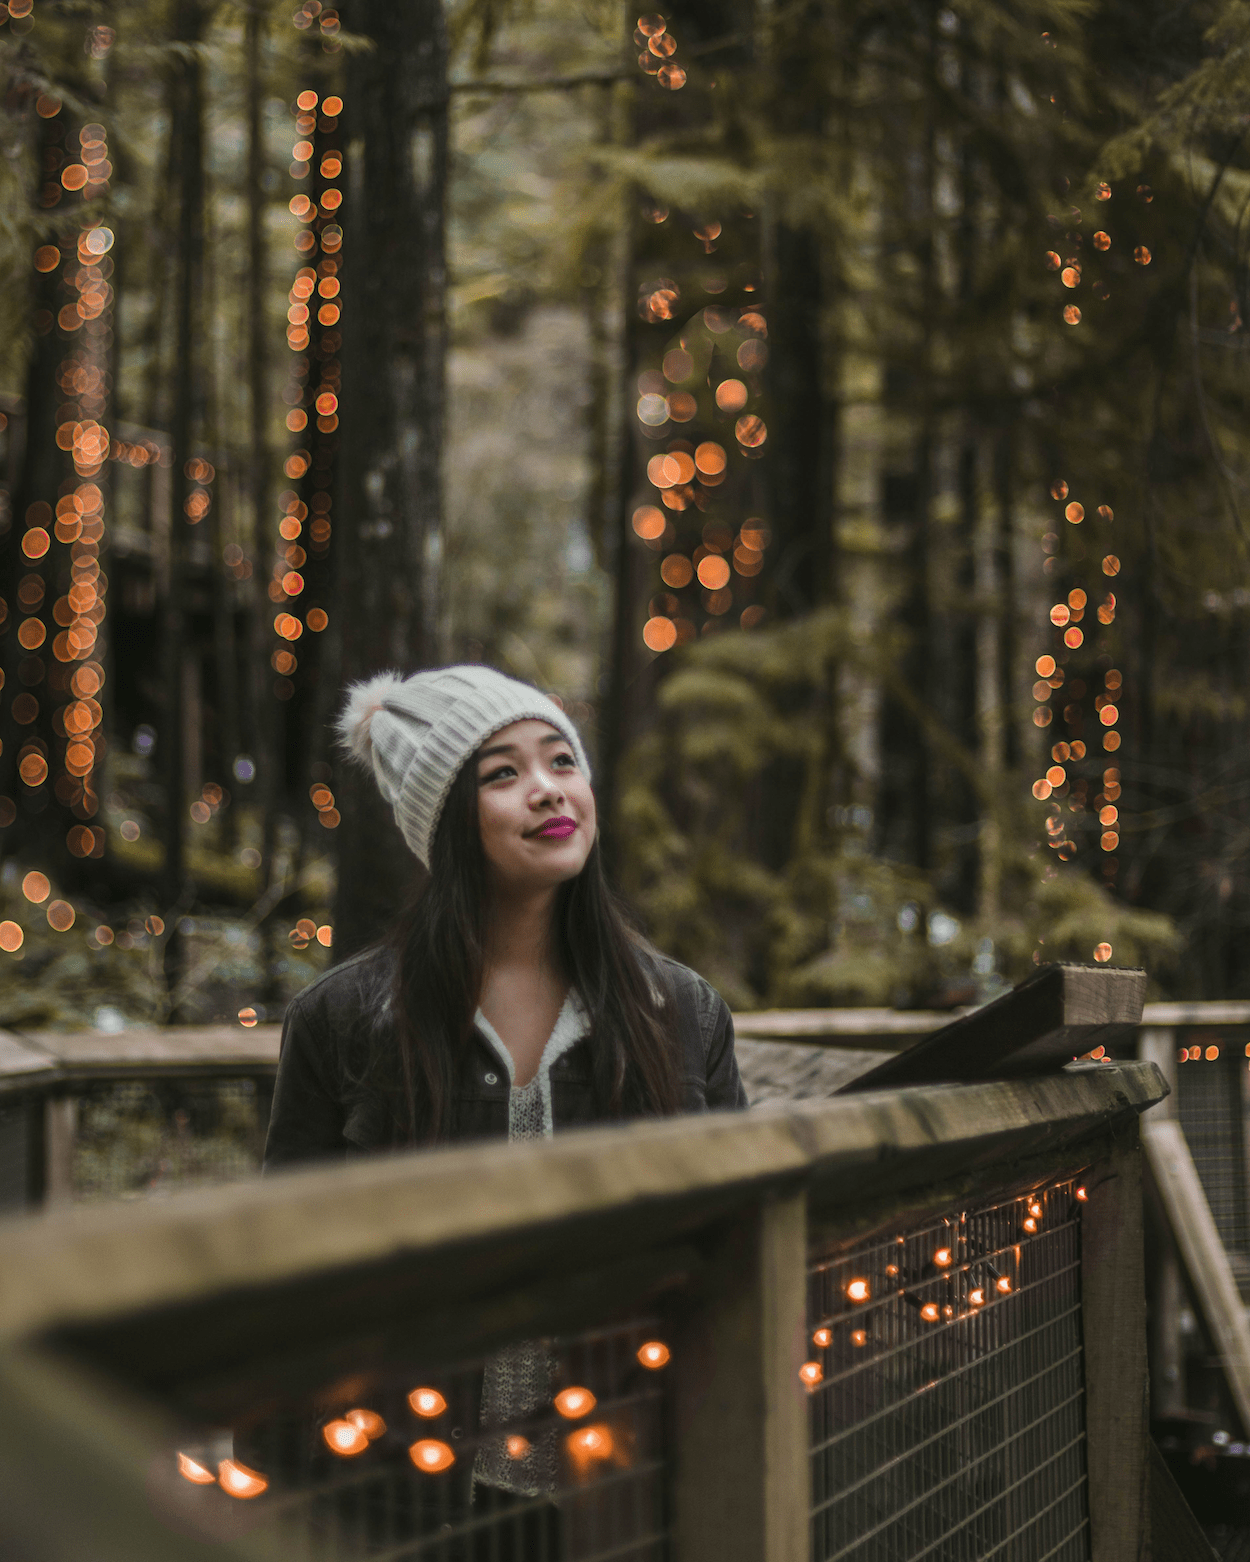 How to spend a winter weekend getaway in Vancouver, British Columbia | most Instagram-worthy spots in Vancouver | top Instagrammable places to visit in Vancouver, BC | best things to see in North Vancouver | what to do and where to go in YVR | Vancity travel guide | Diary of a Toronto Girl, a Canadian lifestyle blog